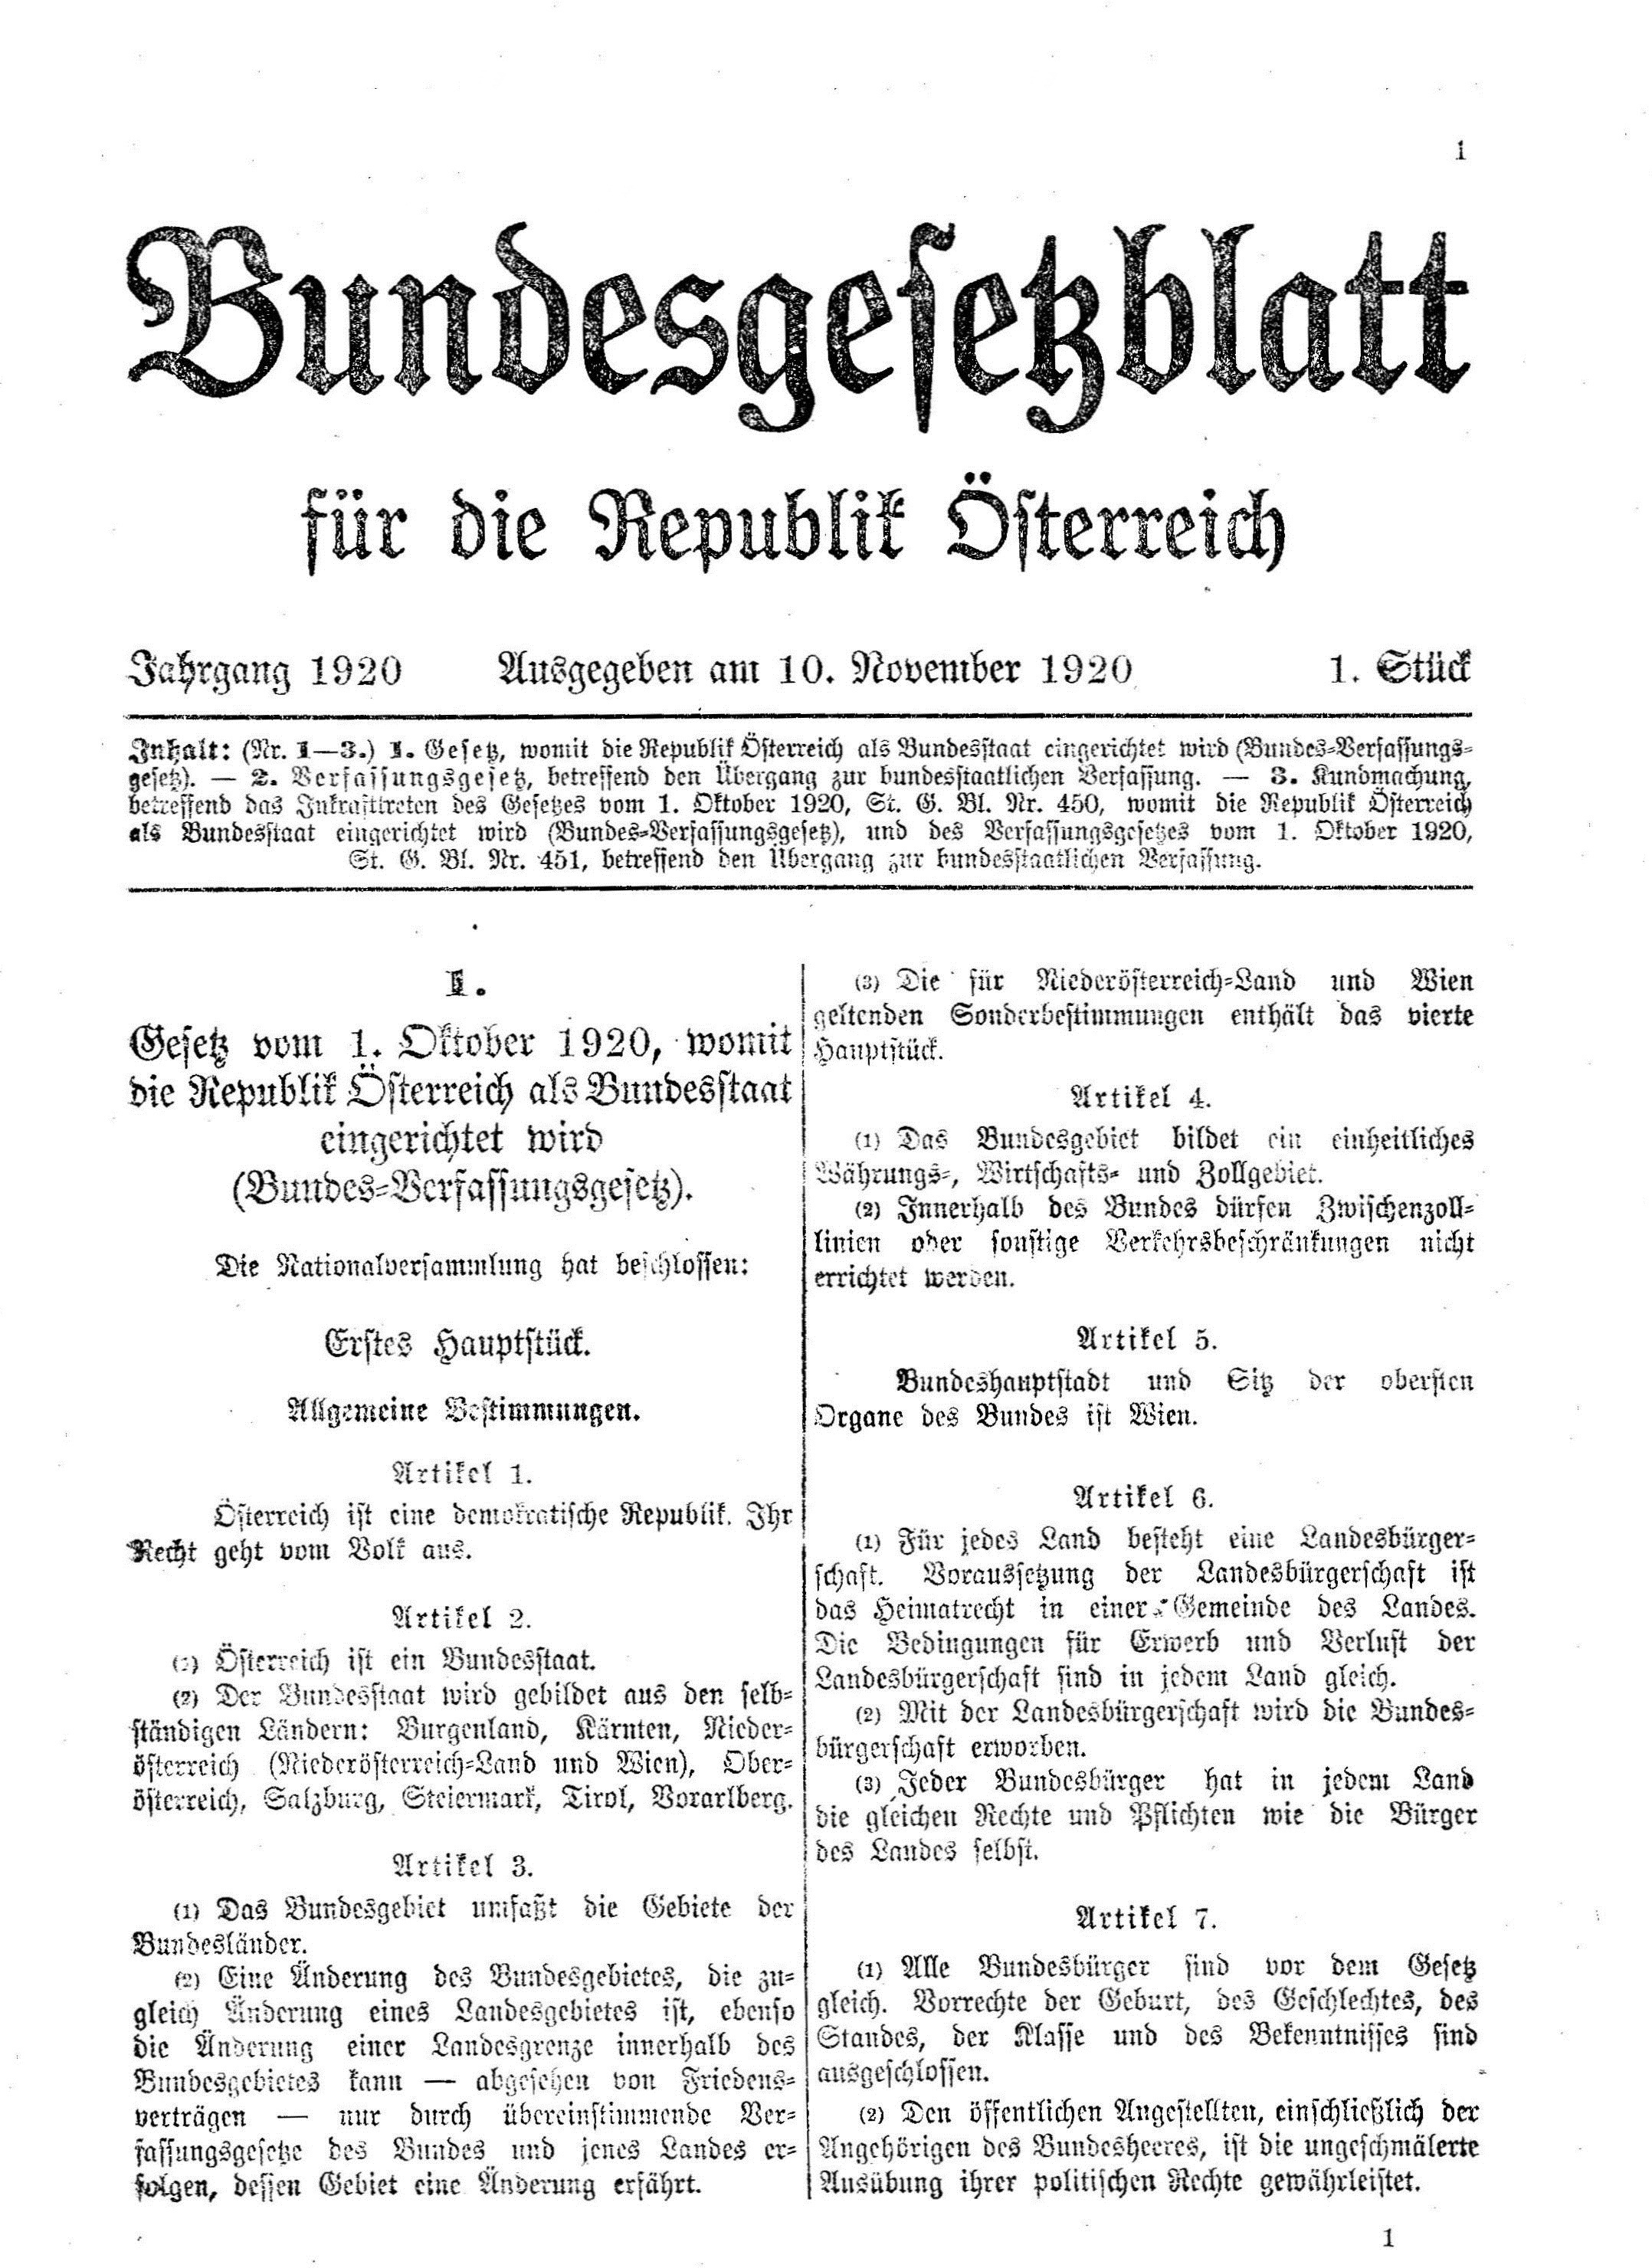 https://i2.wp.com/upload.wikimedia.org/wikipedia/commons/c/cc/Bundesgesetzblatt_%28Austria%29_1920_0001.jpg